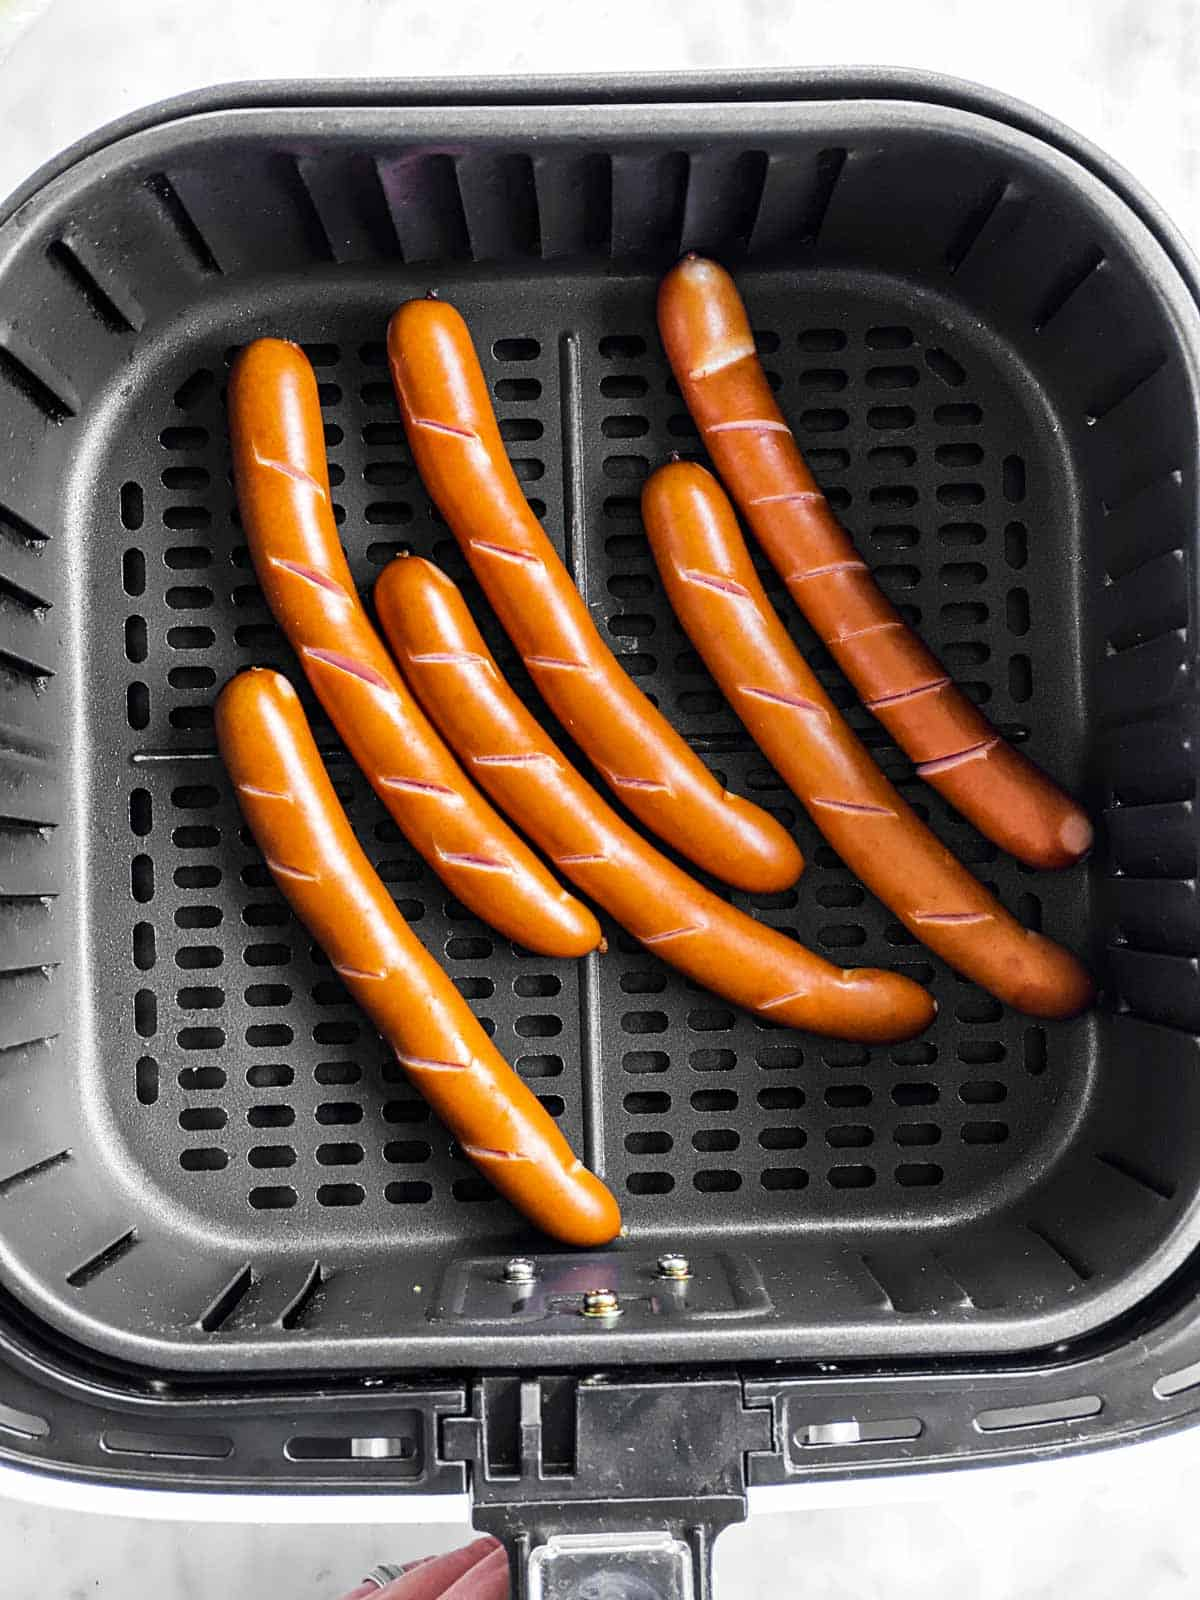 six cooked hot dogs in air fryer basket